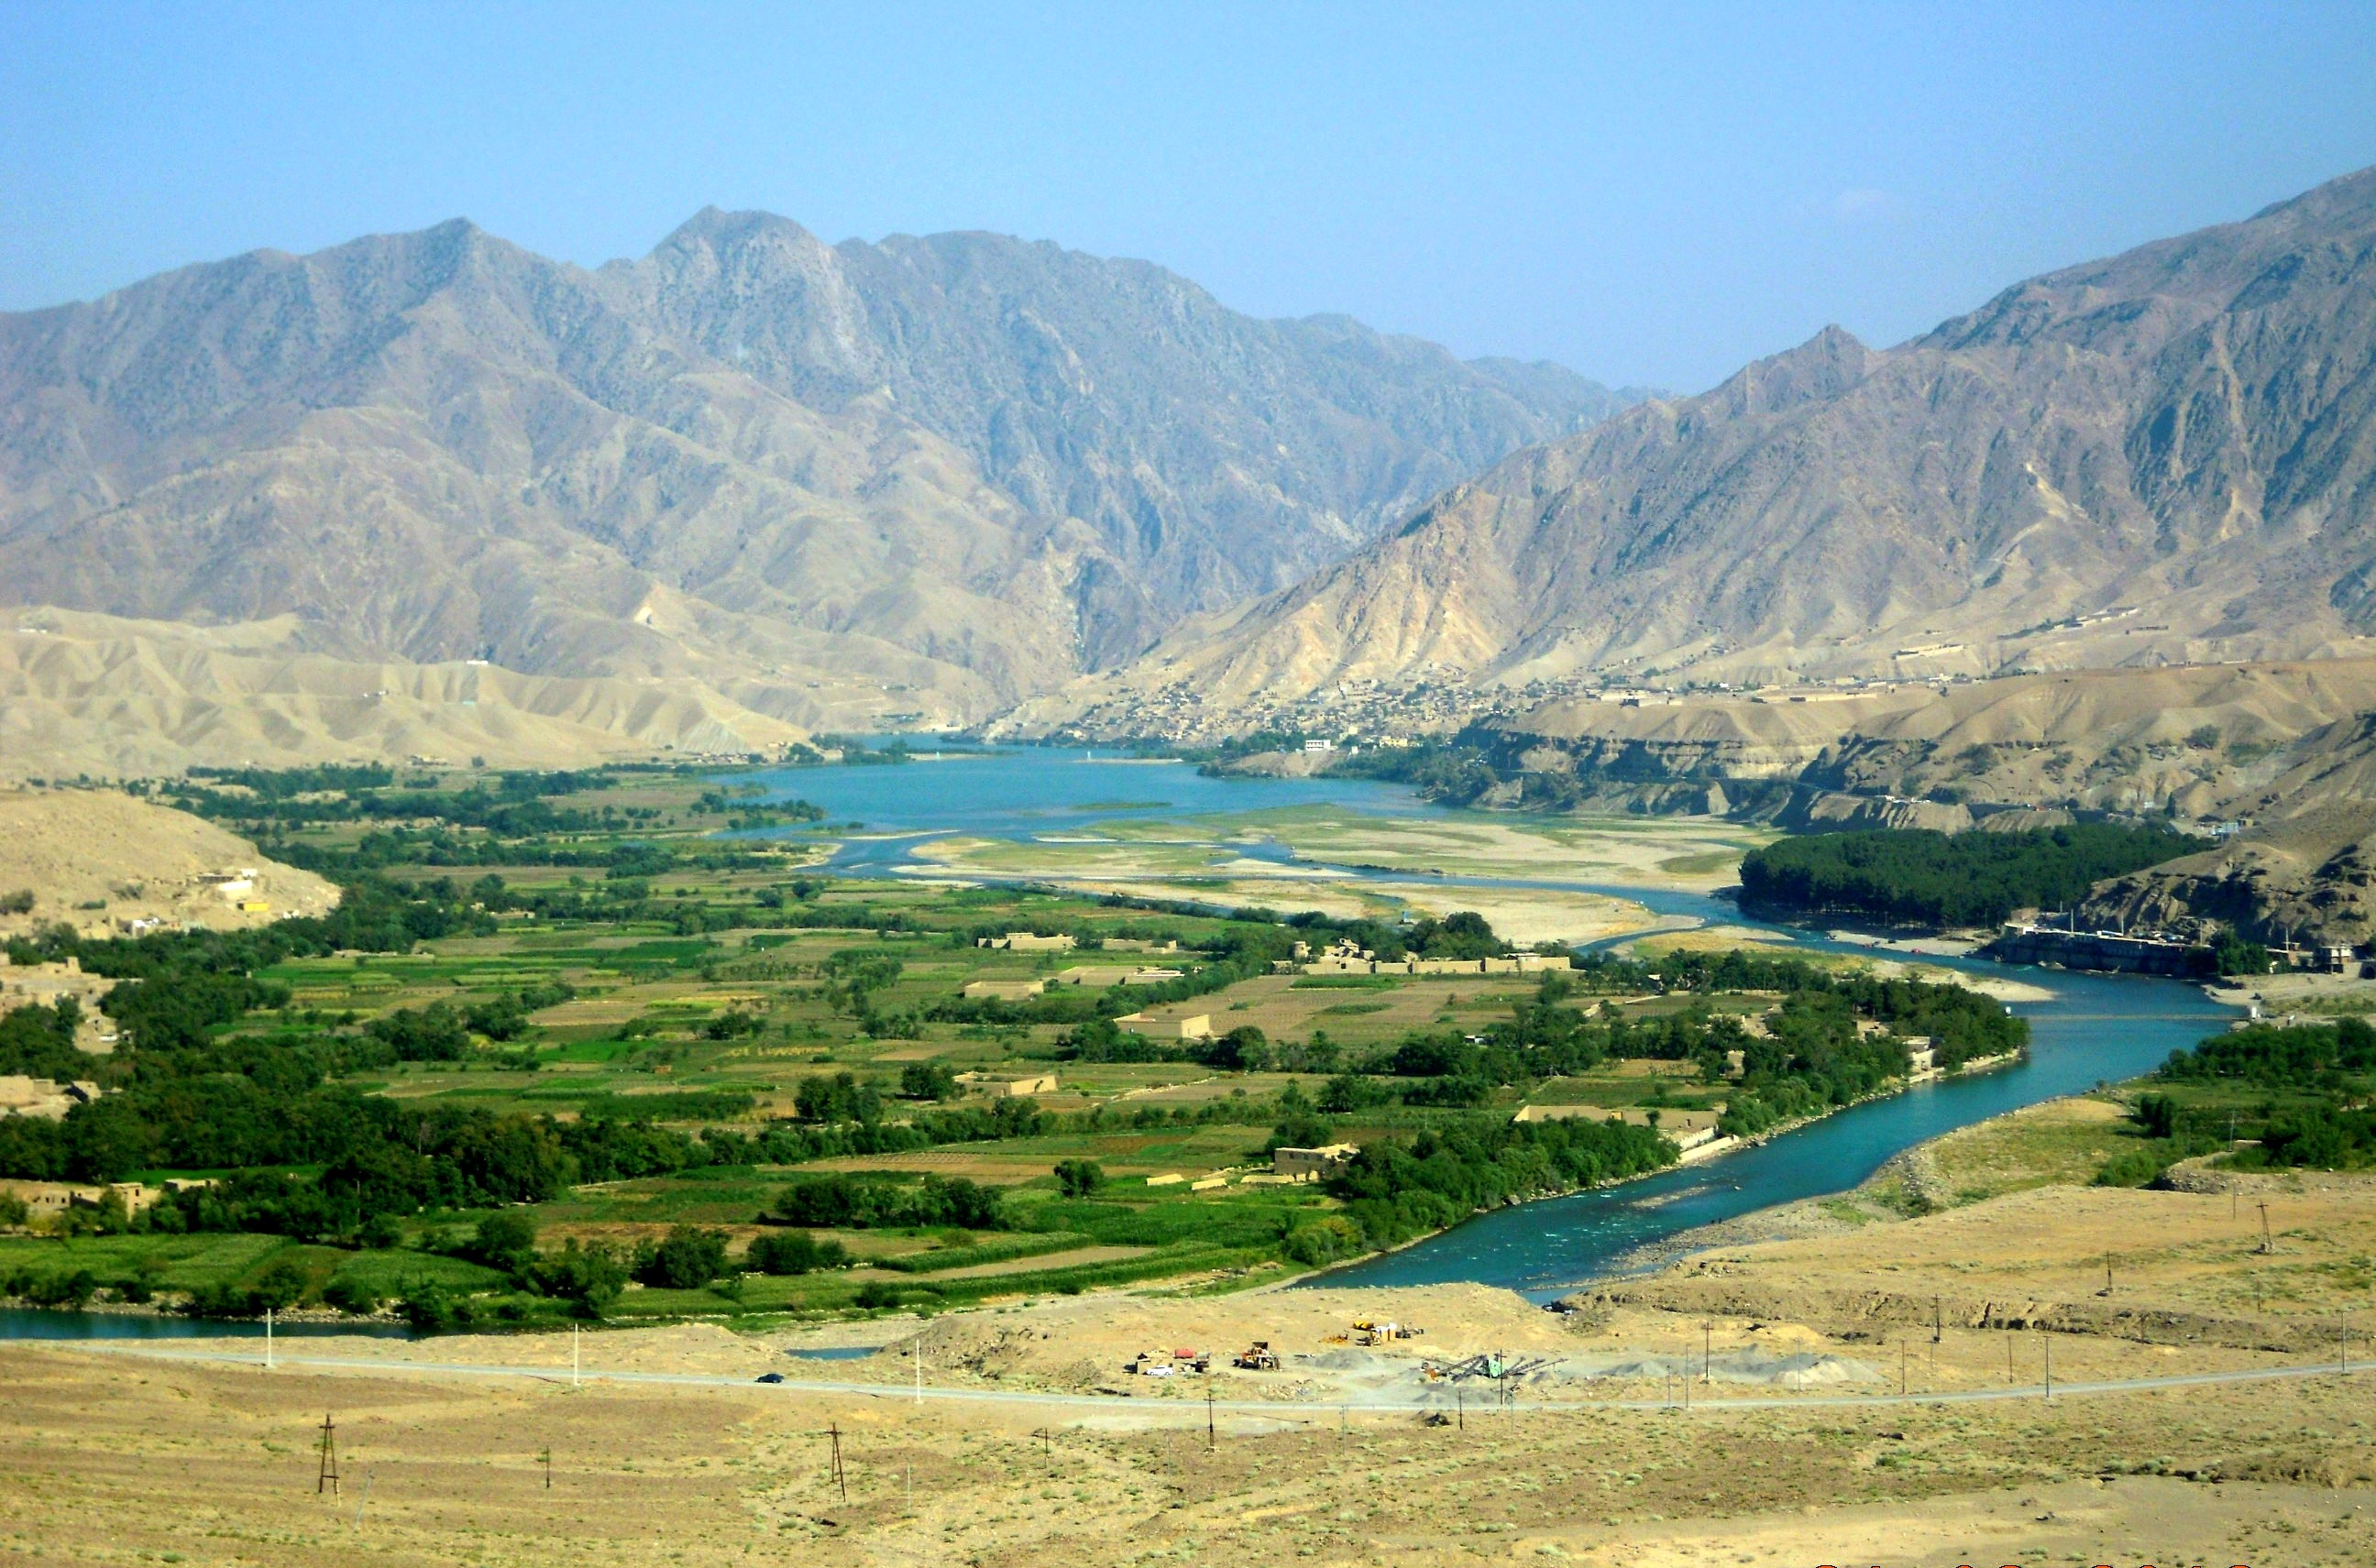 Landscape in Afghanistan.